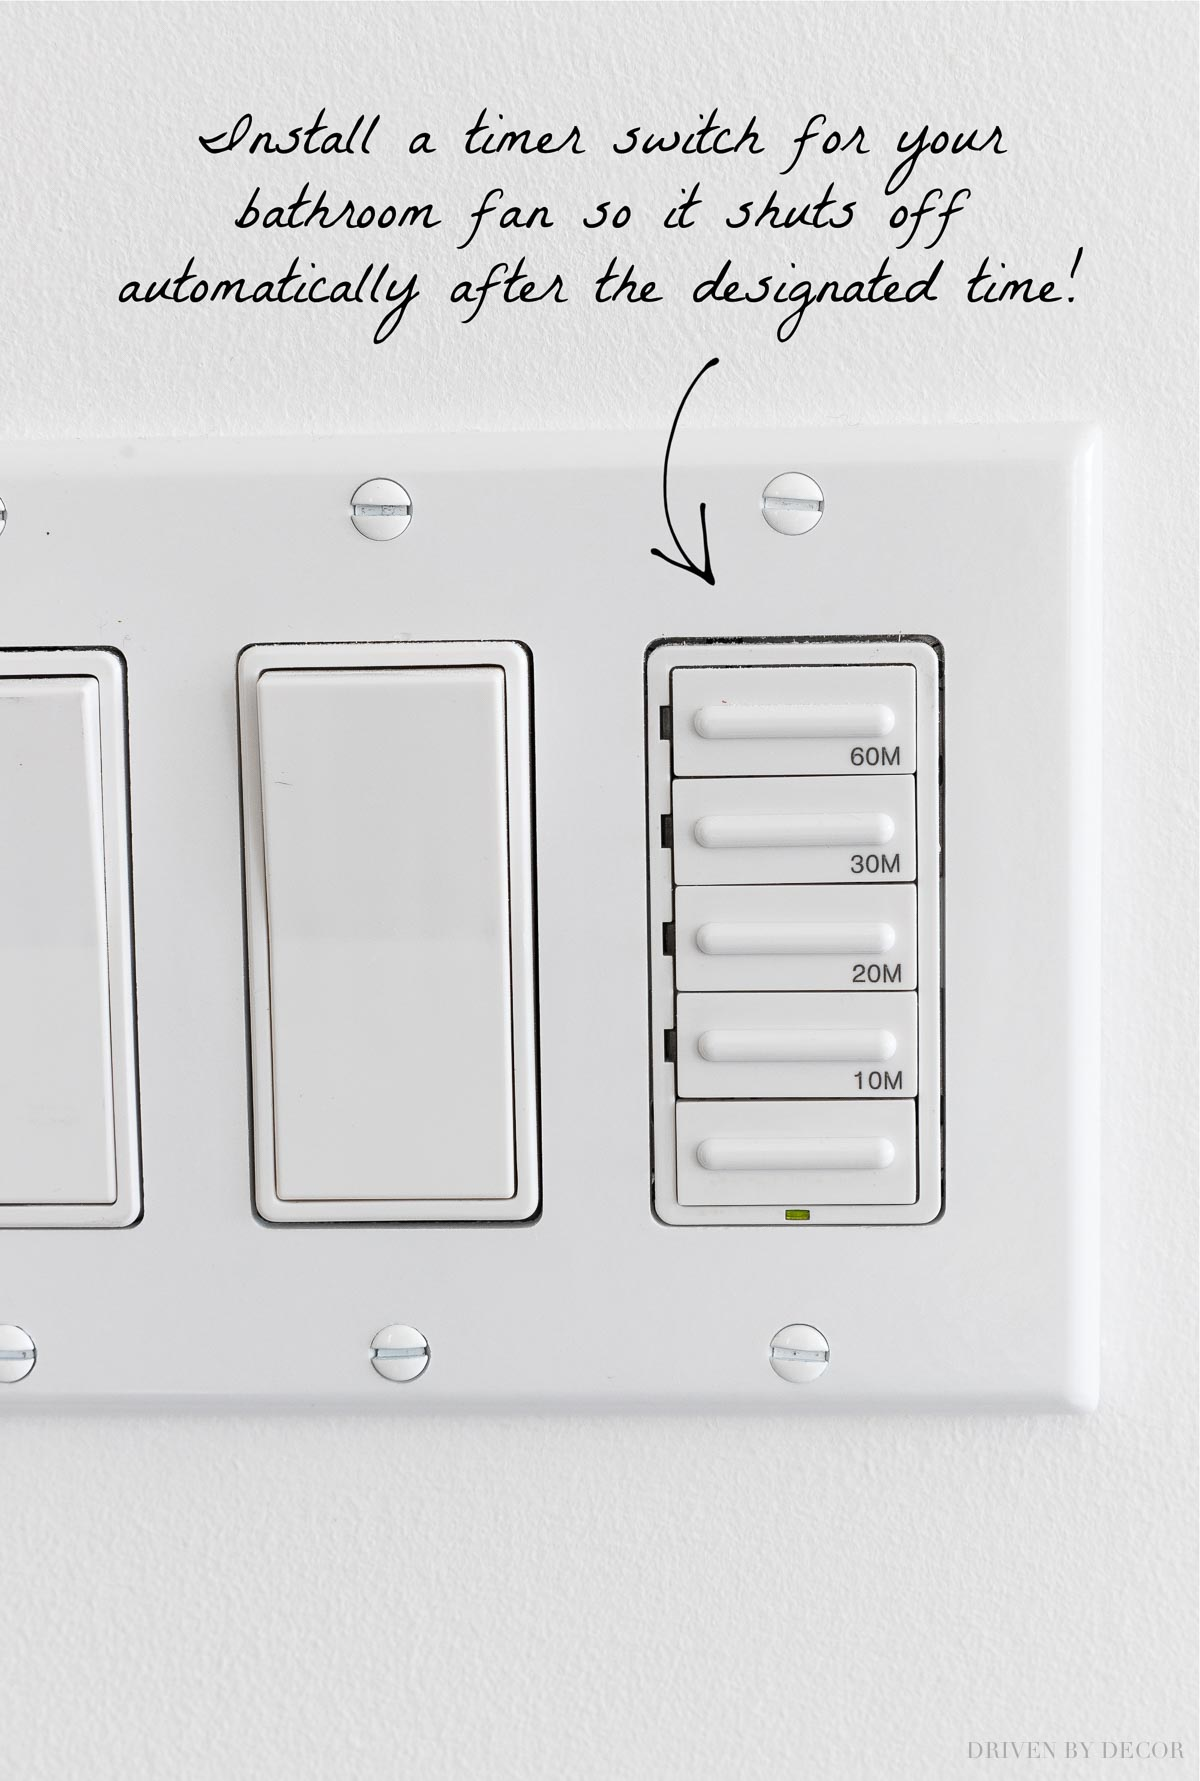 Brilliant! Love this fan timer switch - a great master bathroom remodel idea I'm going to steal!